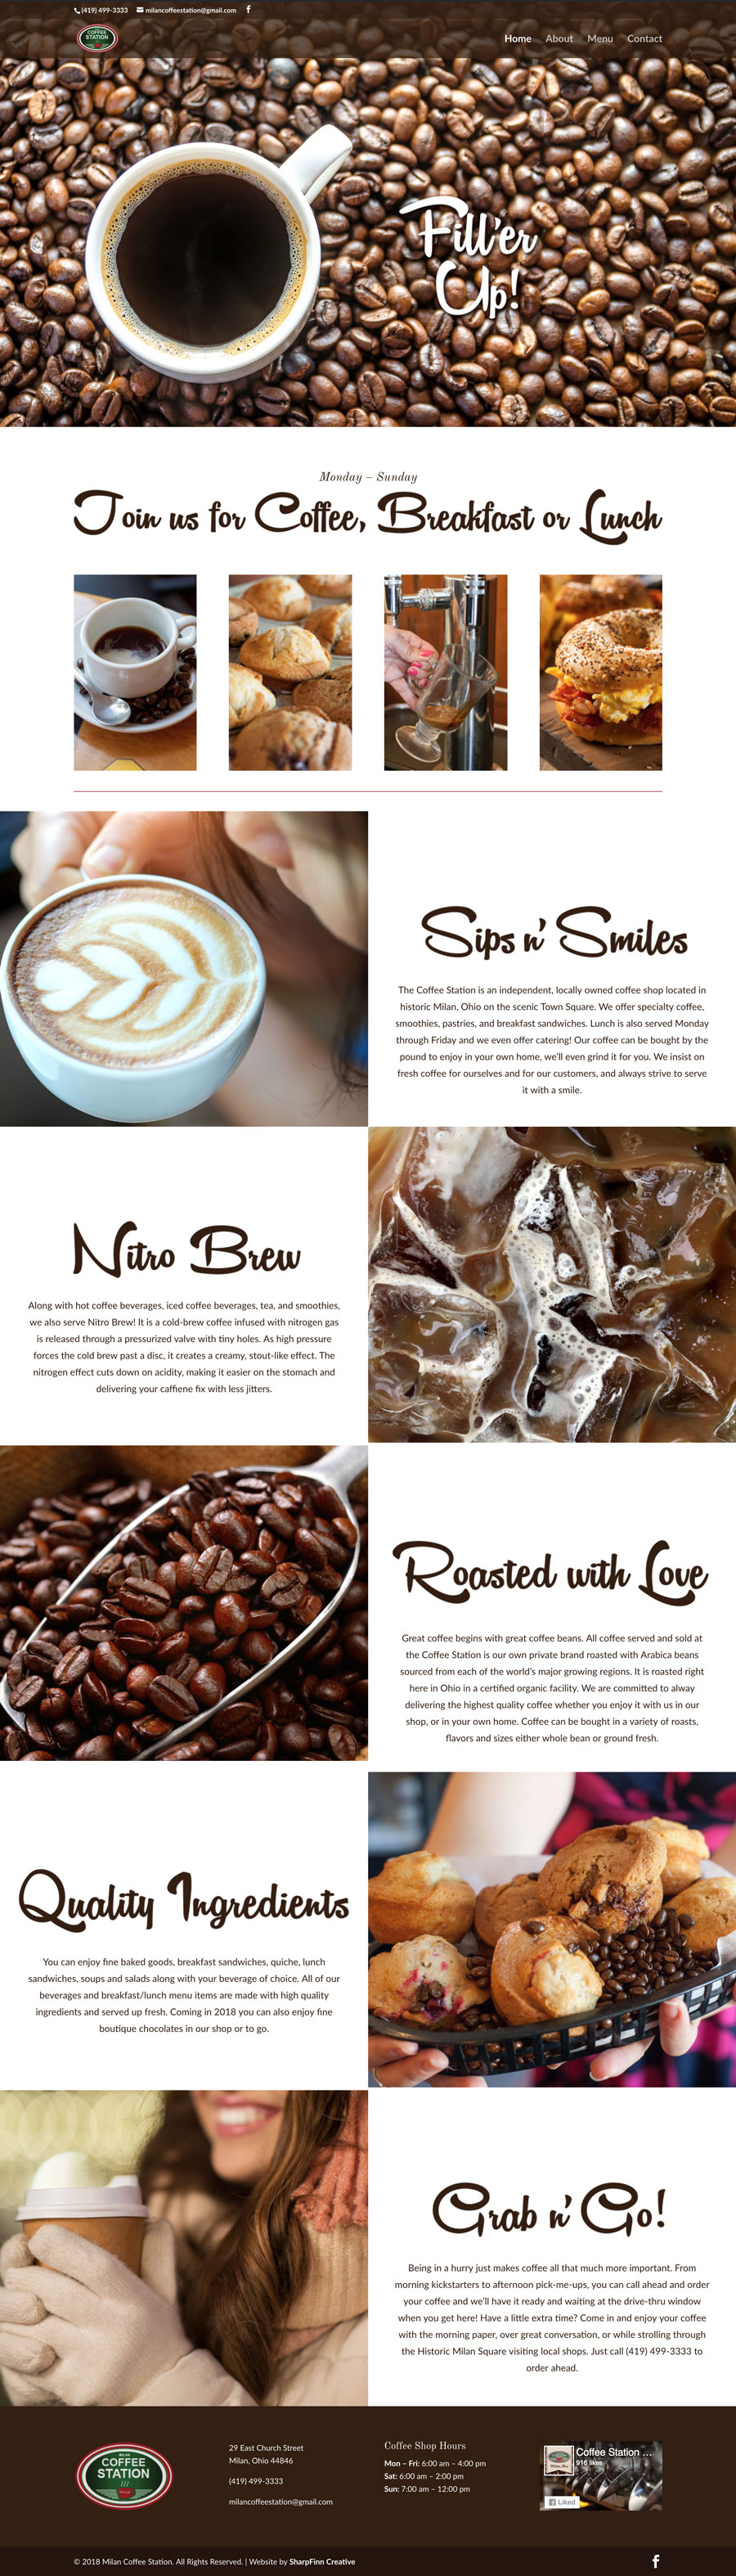 MilanOhioWebsiteDesign-CoffeeStation